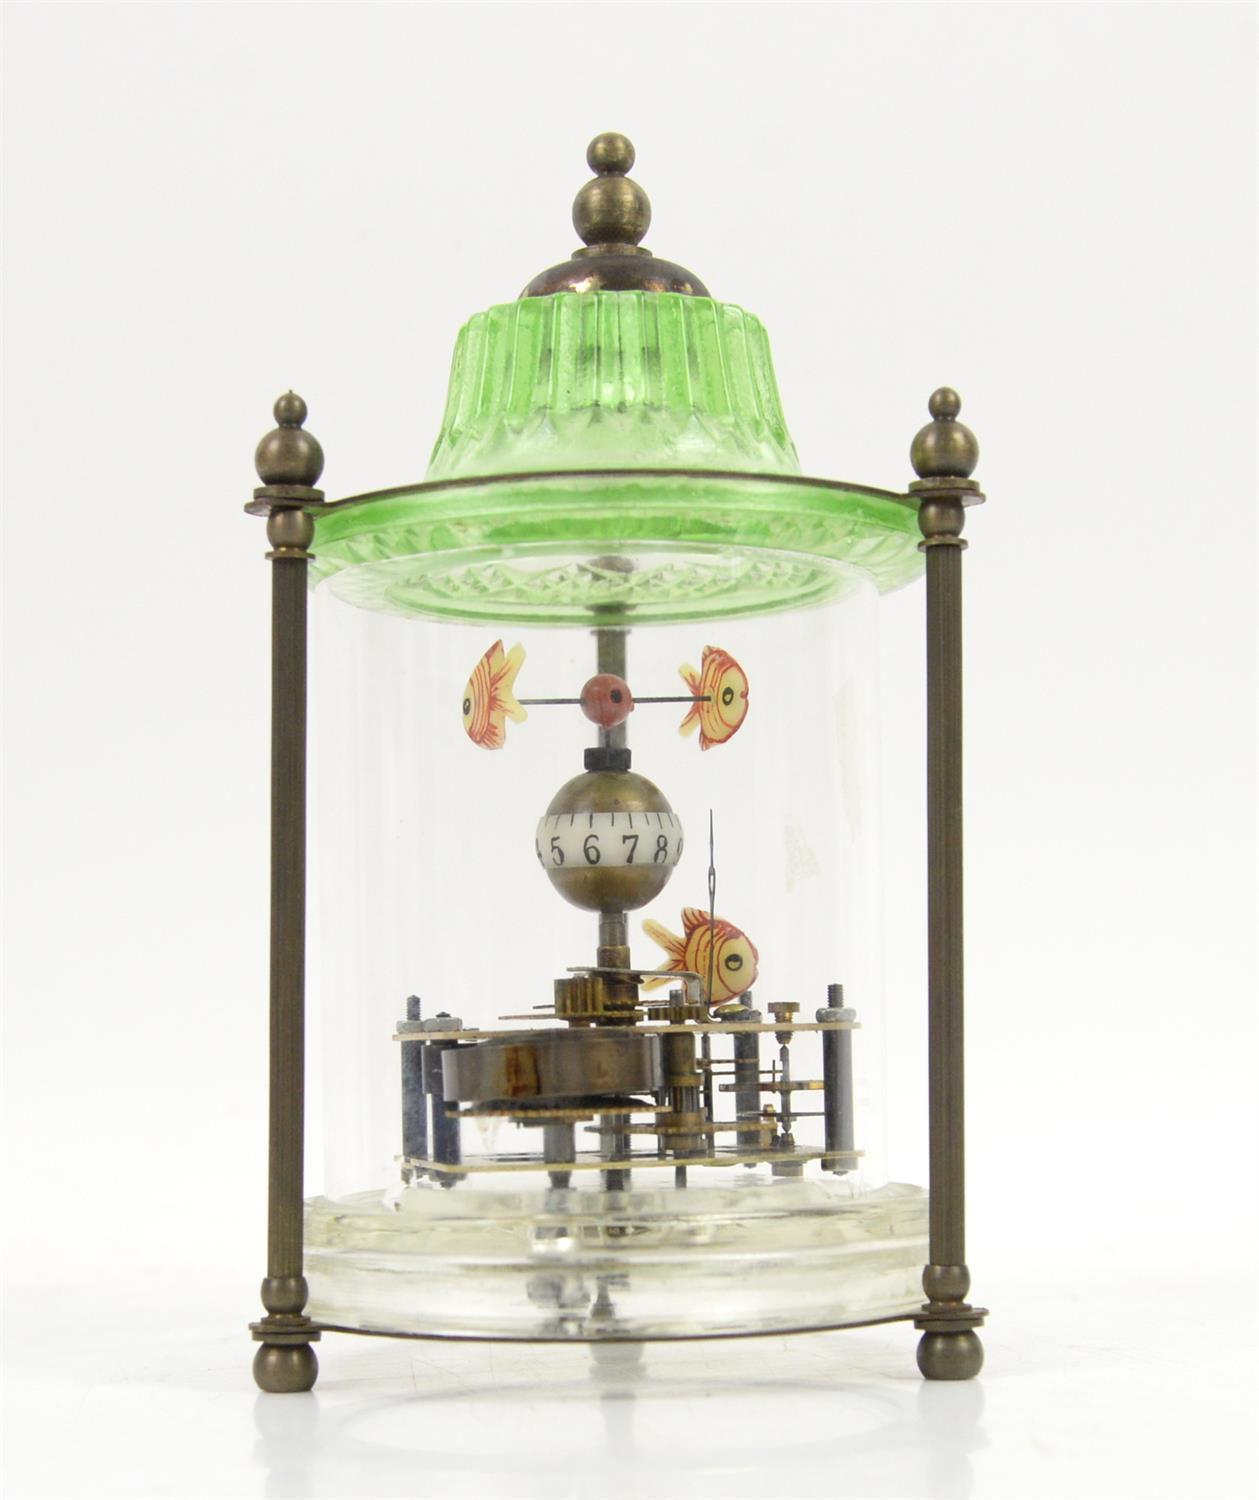 Chinese style automaton clock in glass cylindrical case with pagoda top, three reeded column